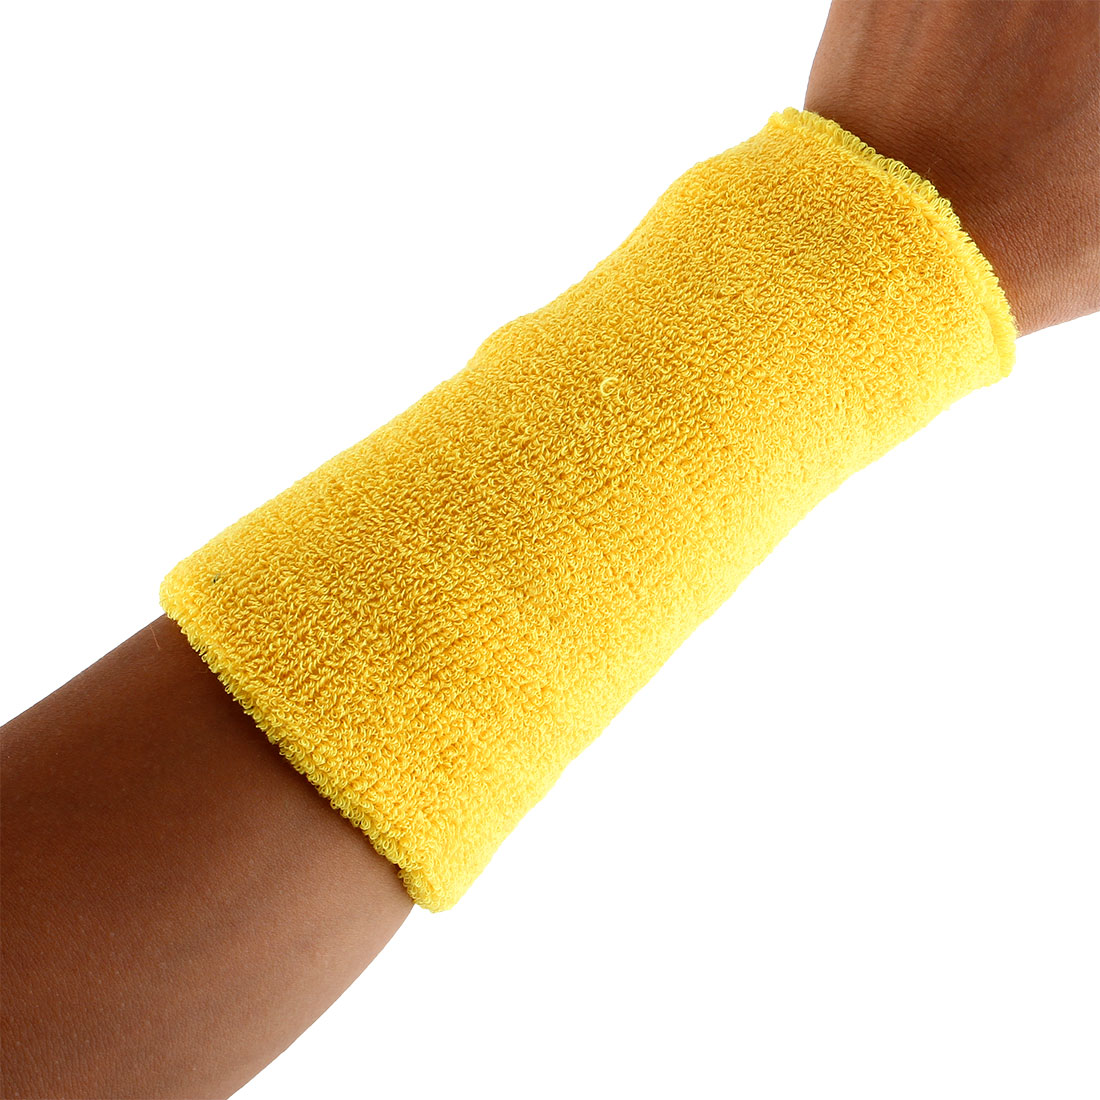 Exercises Basketball Running Hand Support Bandage Sweatband Wristband Sport Wrist Yellow 15cm Long 2pcs